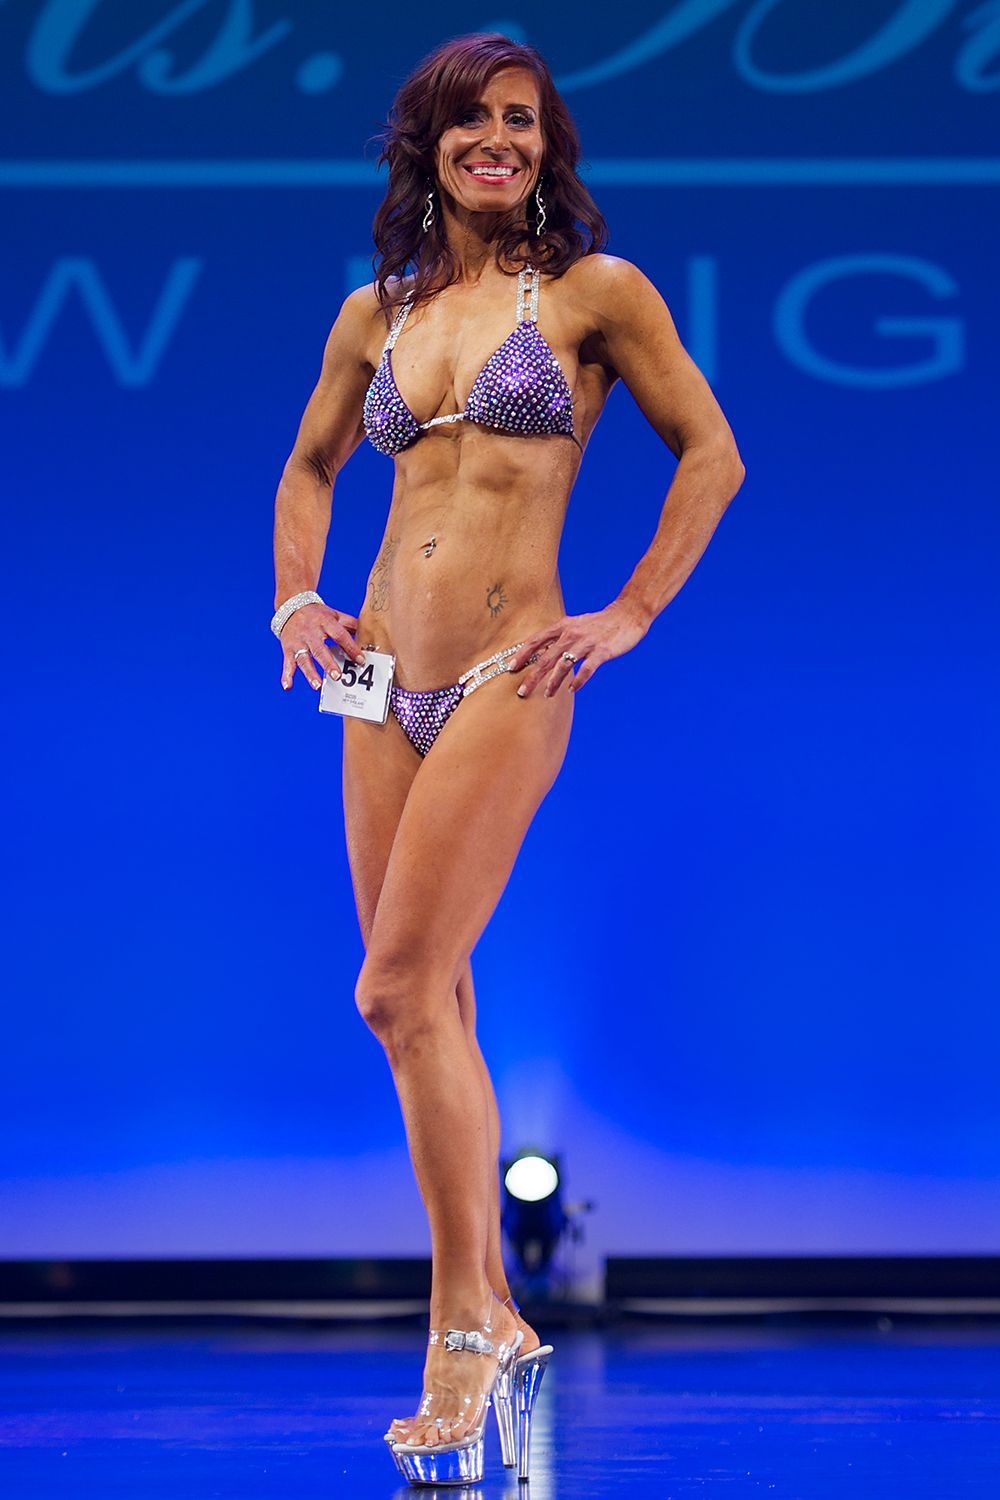 Older Fitness Models : older, fitness, models, Shape, First, Fitness, Competition, Prevention